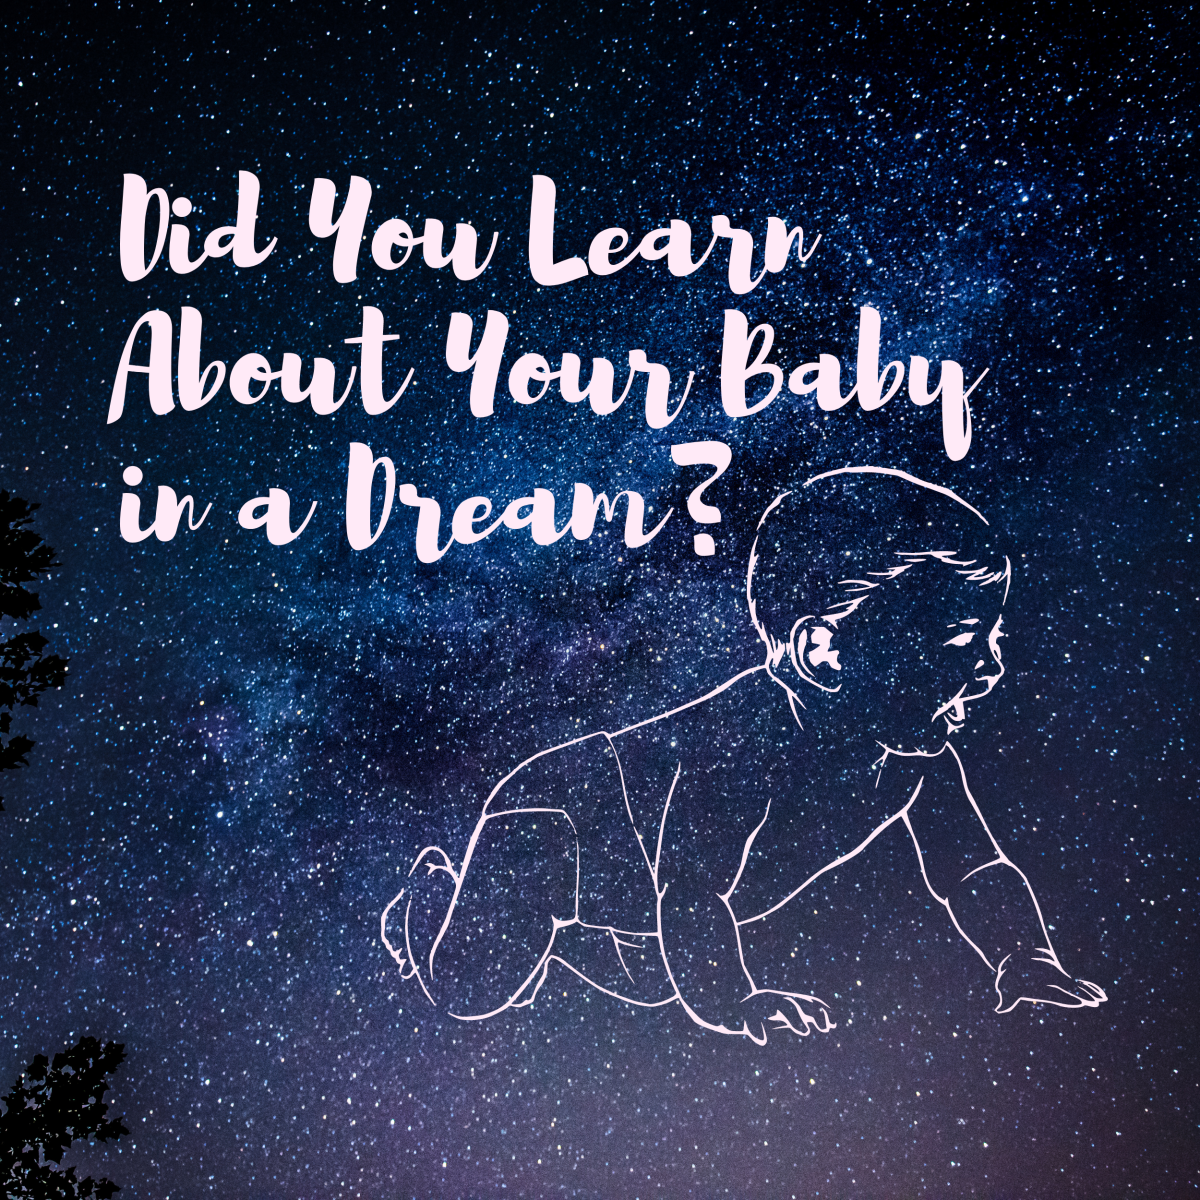 Did you learn about your baby in a dream? If so, please answer these survey questions!